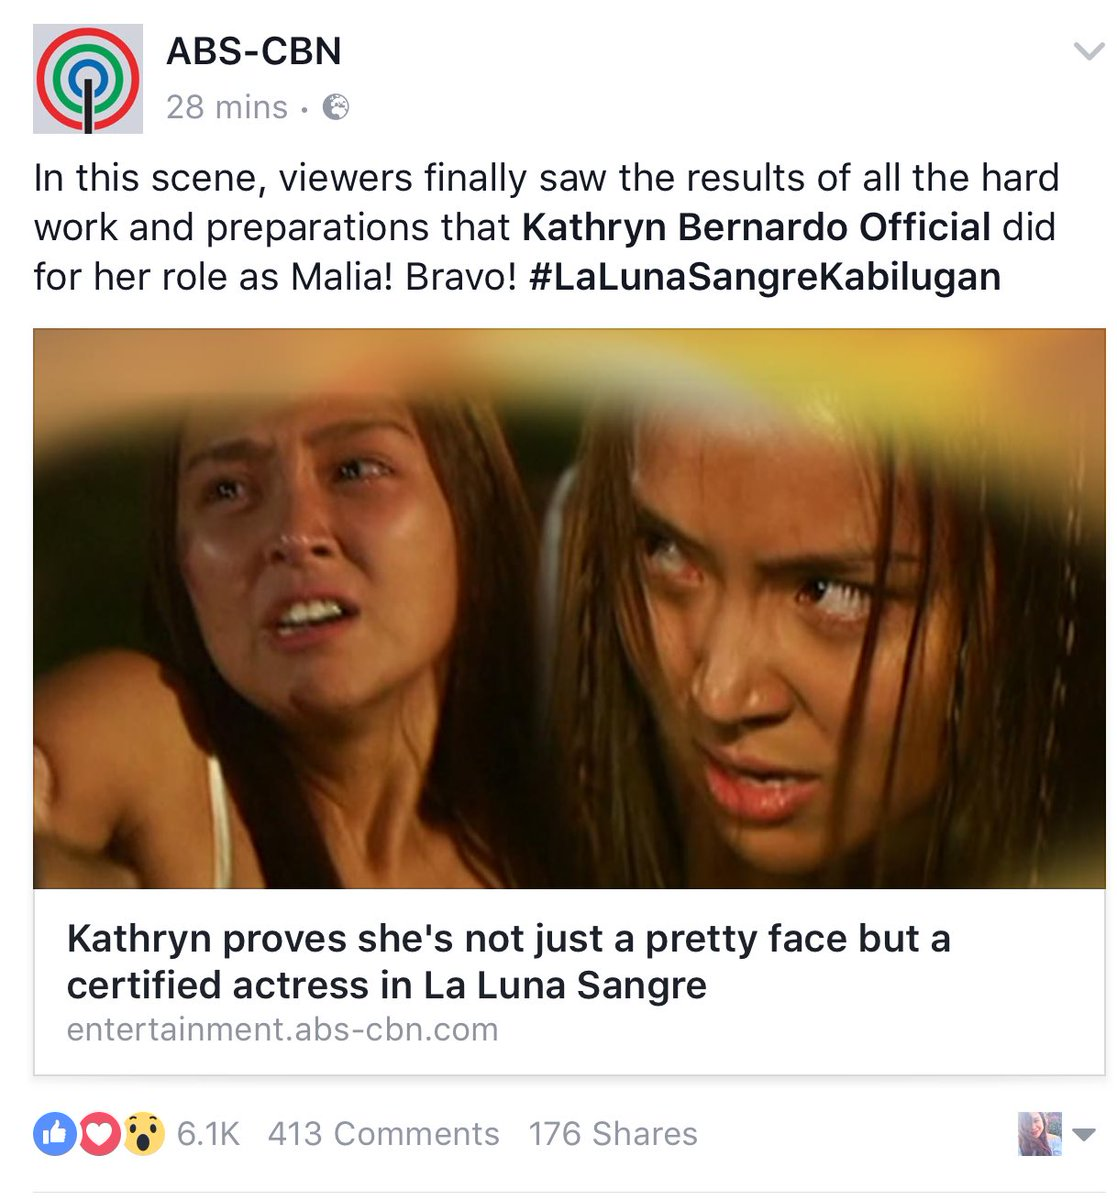 RT @periwinkle525: GUYS! Pusuan please!! Minsan lang yanh ganyang kabilis na article! #LaLunaSangreKabilugan https://t.co/UAMR65Bfwi